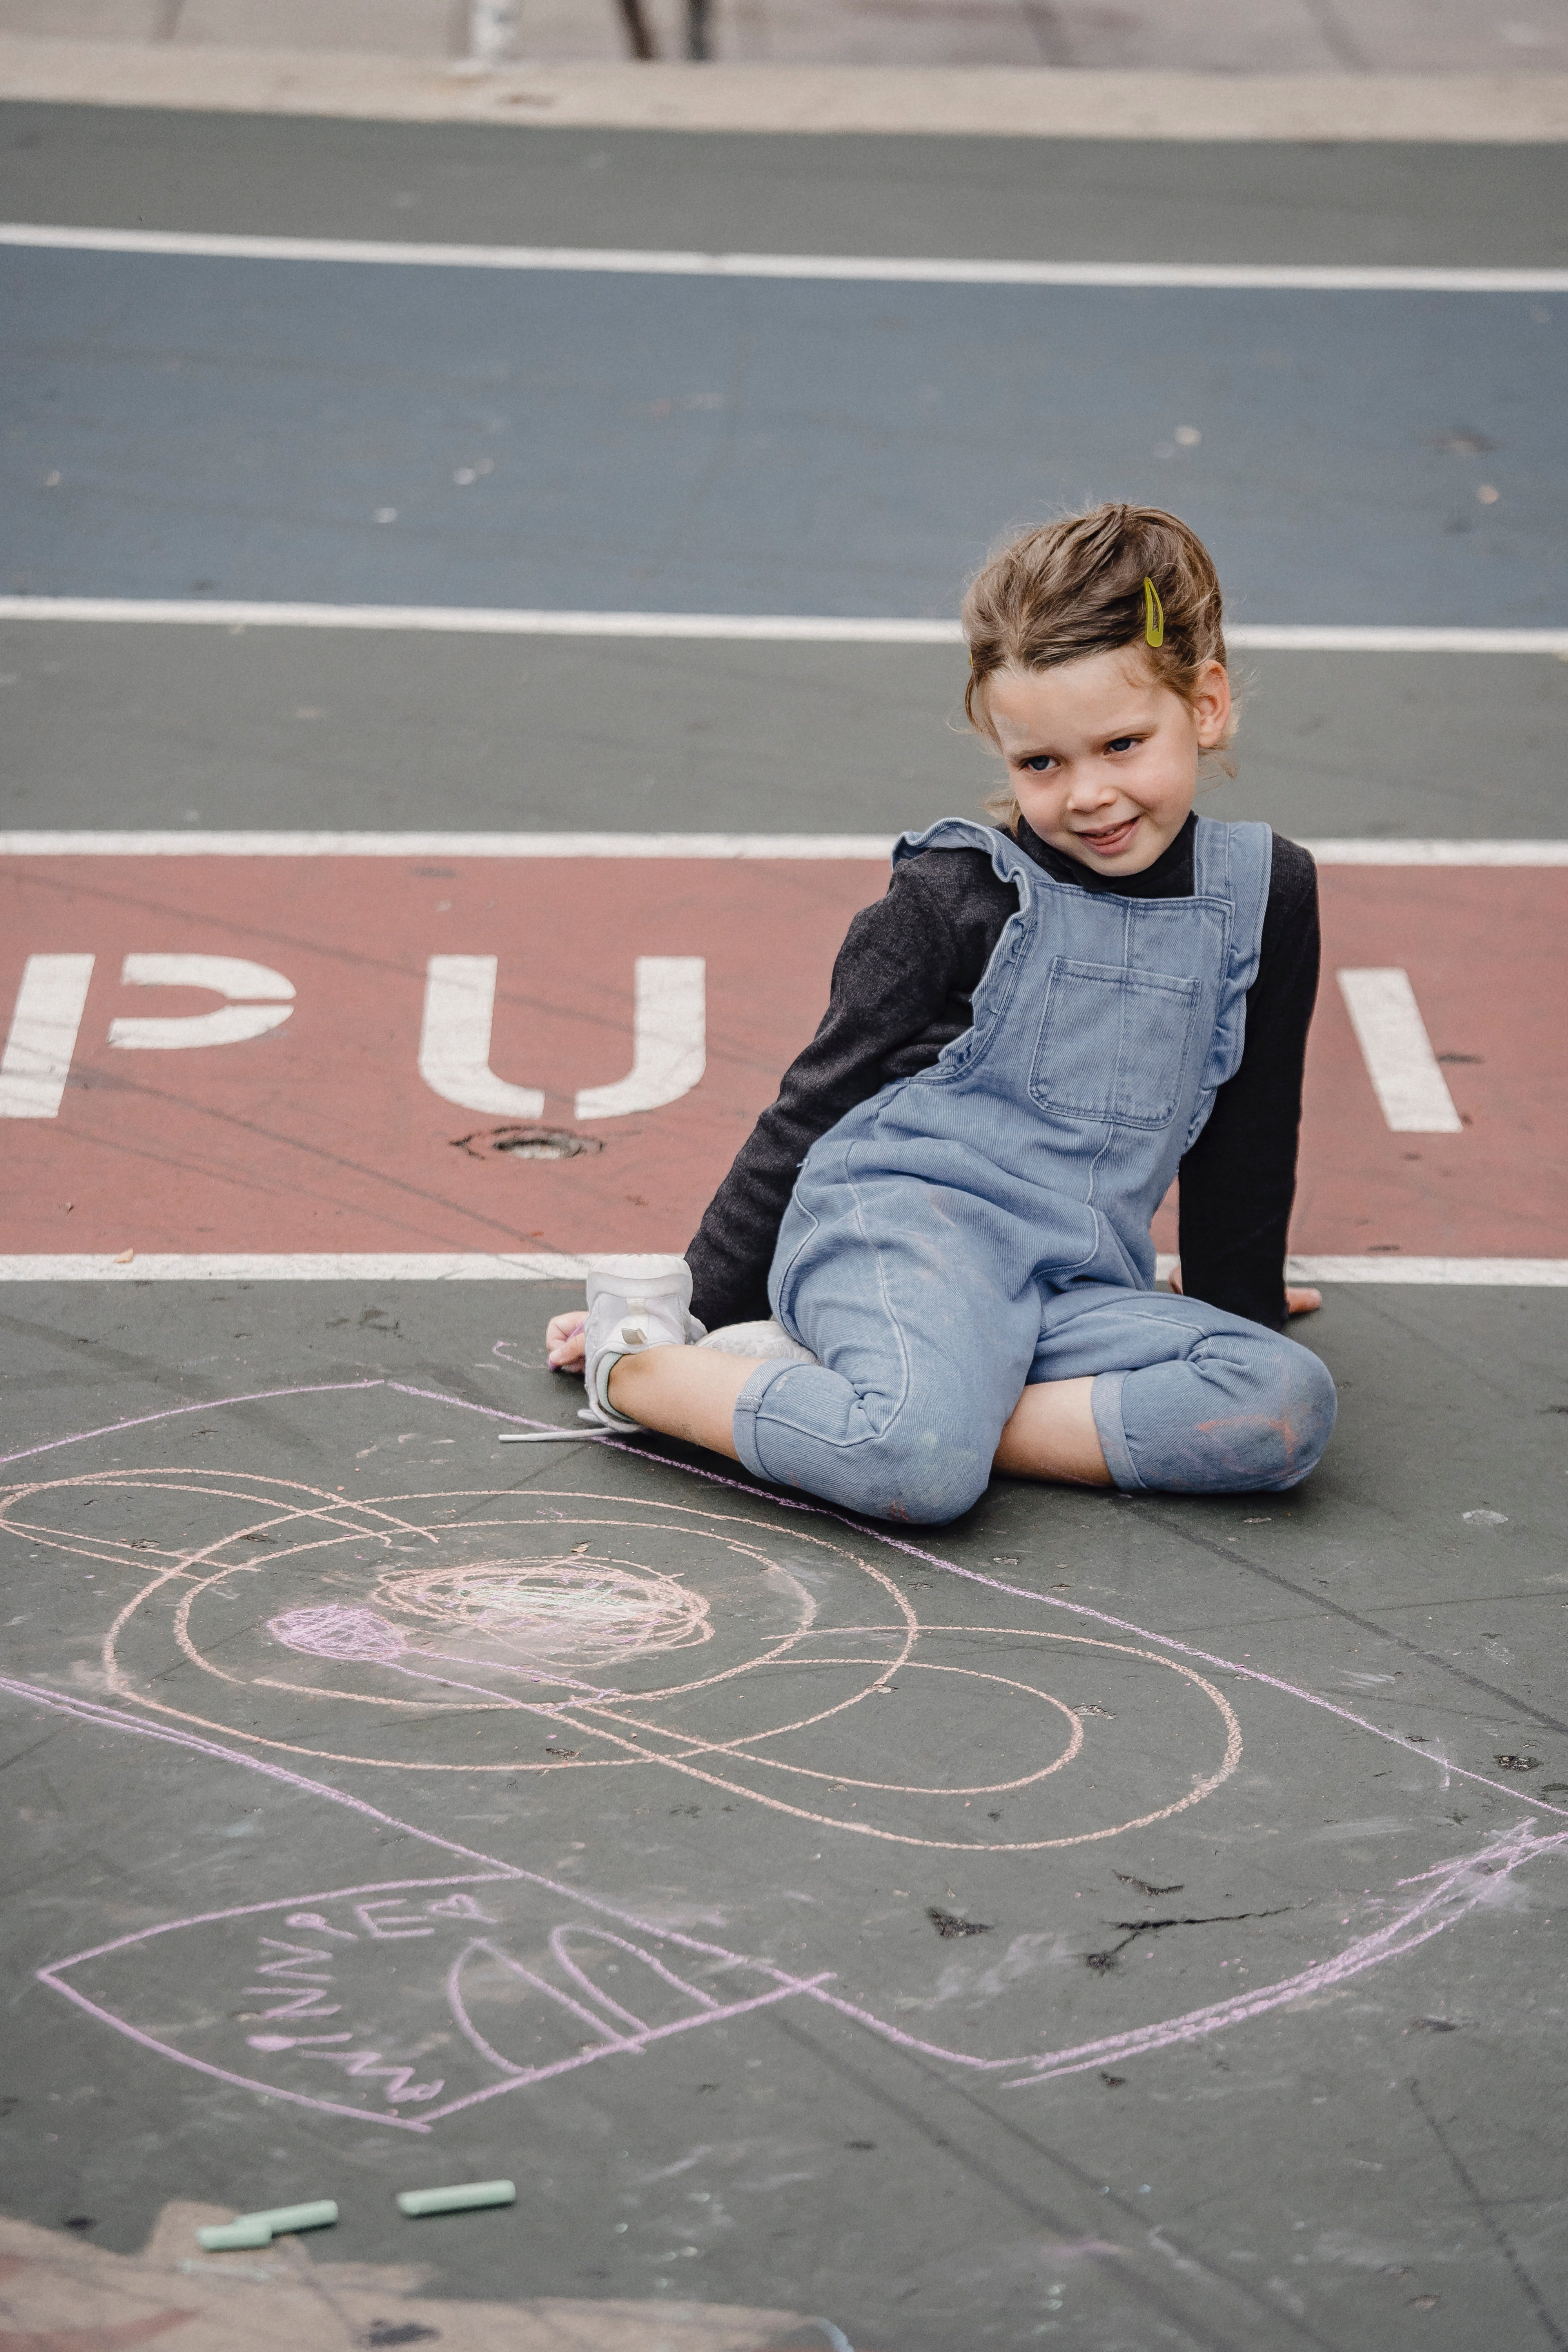 Pictured - A young girl sitting on asphalt neat chalk painting | Source: Pexels